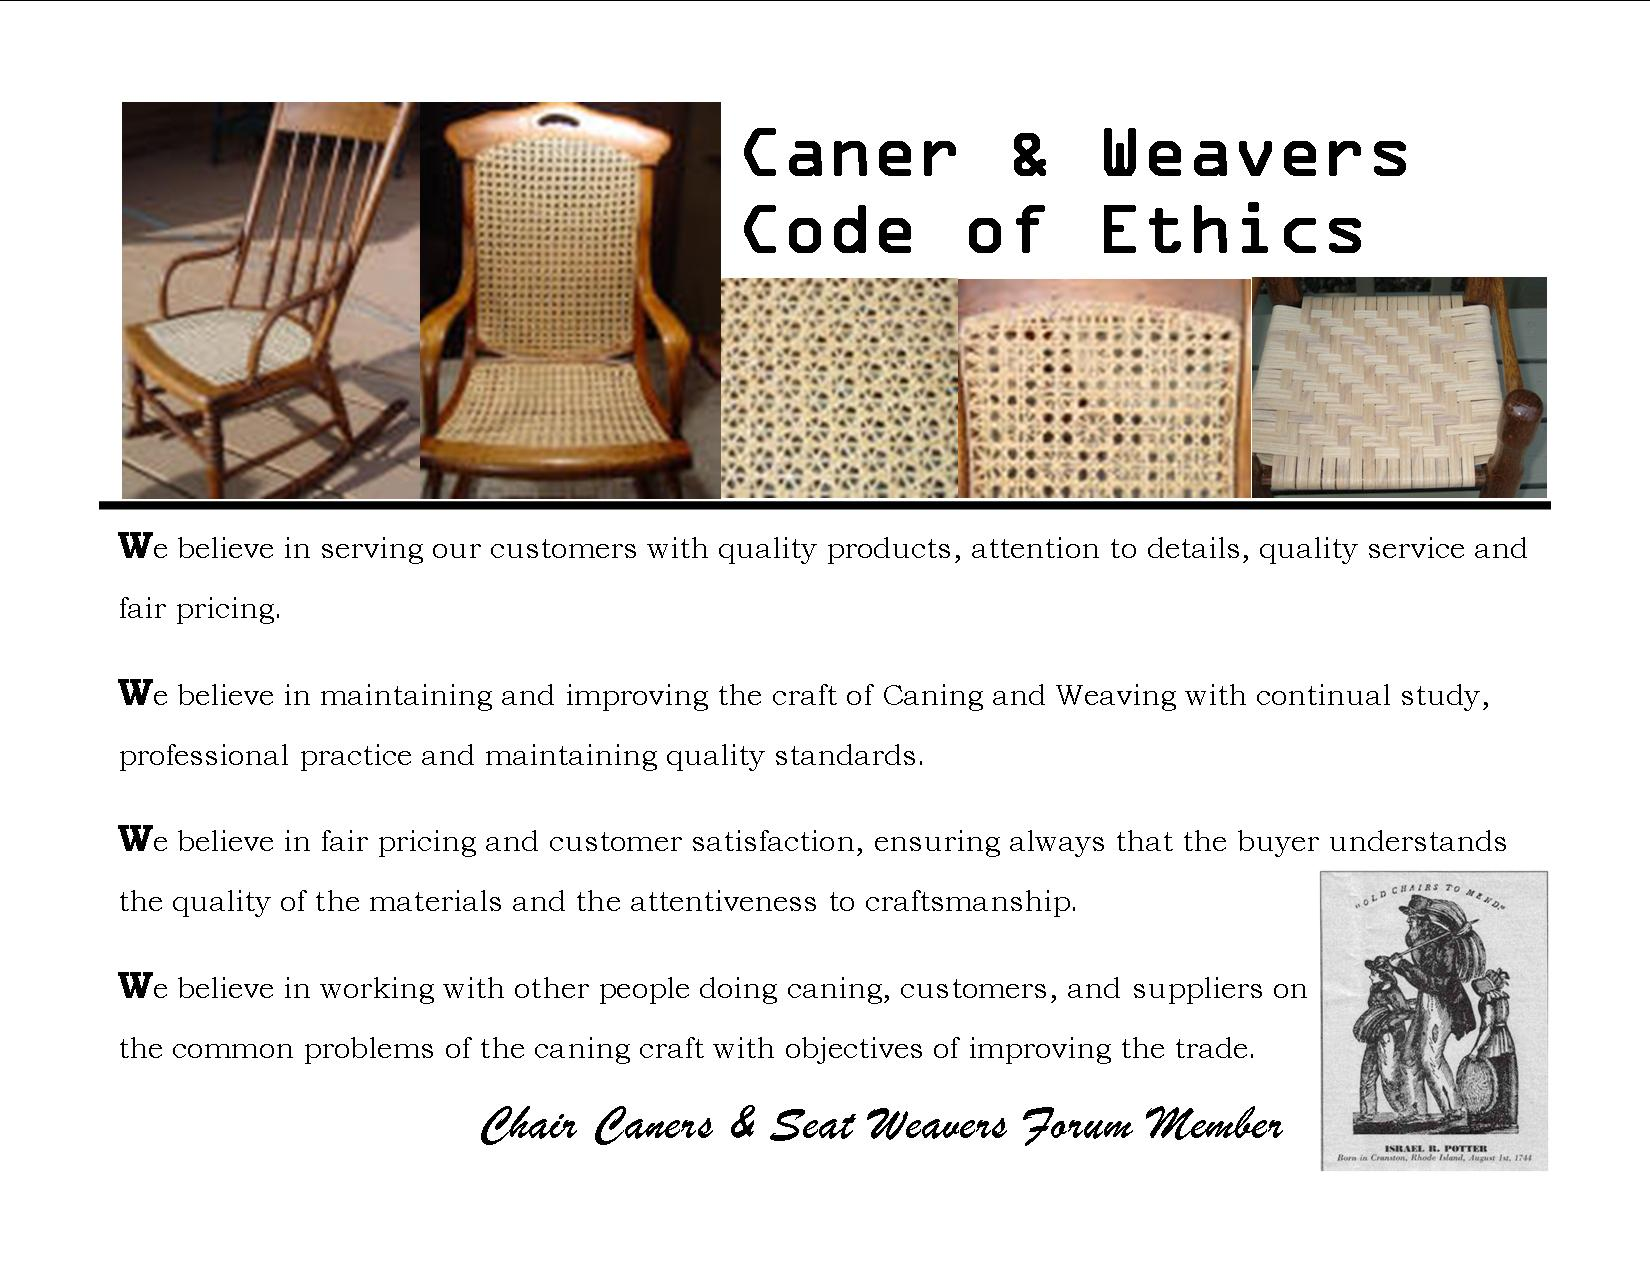 Chair Caners Code Of Ethics. Quality Caners U0026 Weaver Strive To Succeed With  This Pledge. Seatweaving, Chair Caning Forum Member